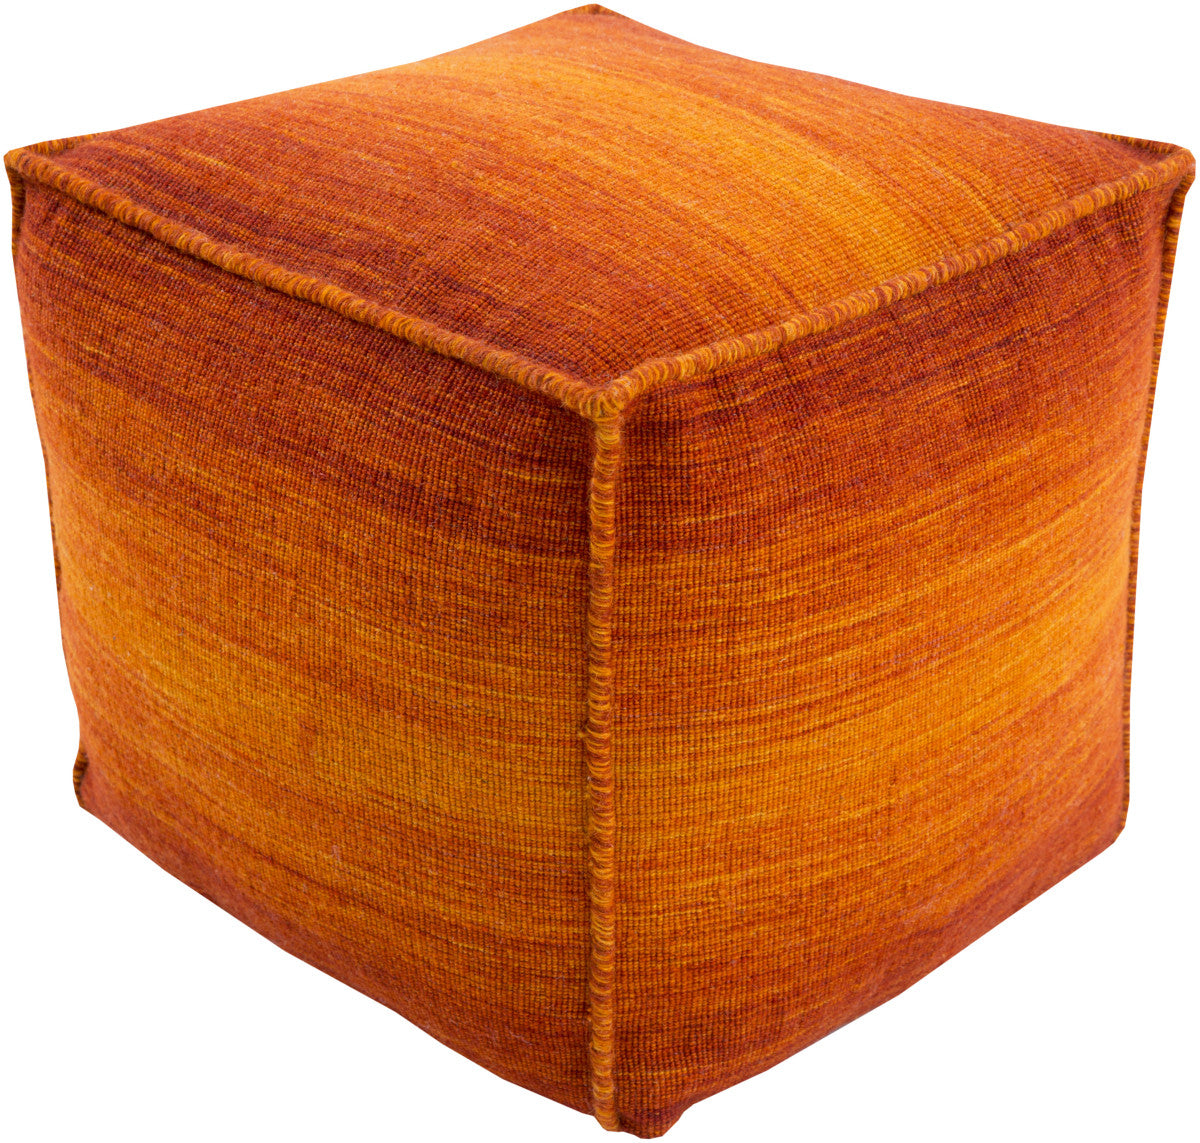 Surya Chaz CZPF-001 Orange Pouf